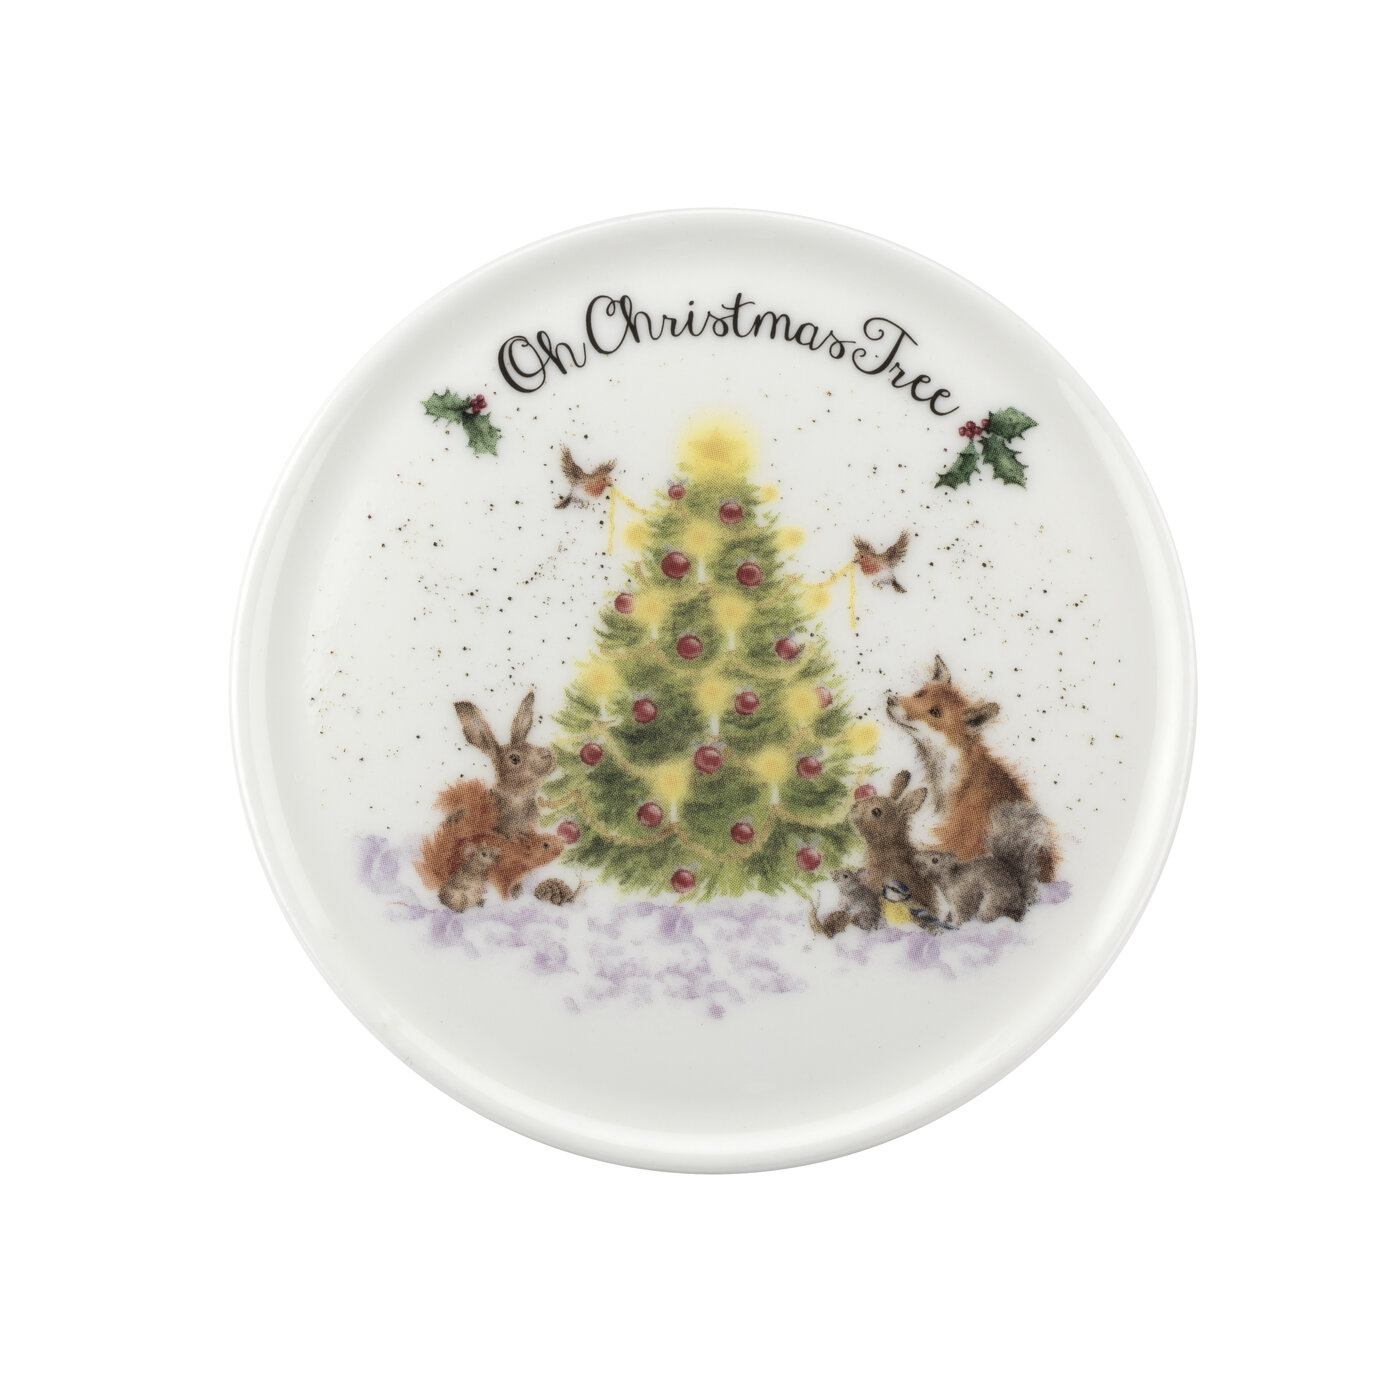 Royal Worcester Wrendale Designs 11 oz Mug & Coaster Set Oh Christmas Tree (Woodland Friends) image number 2